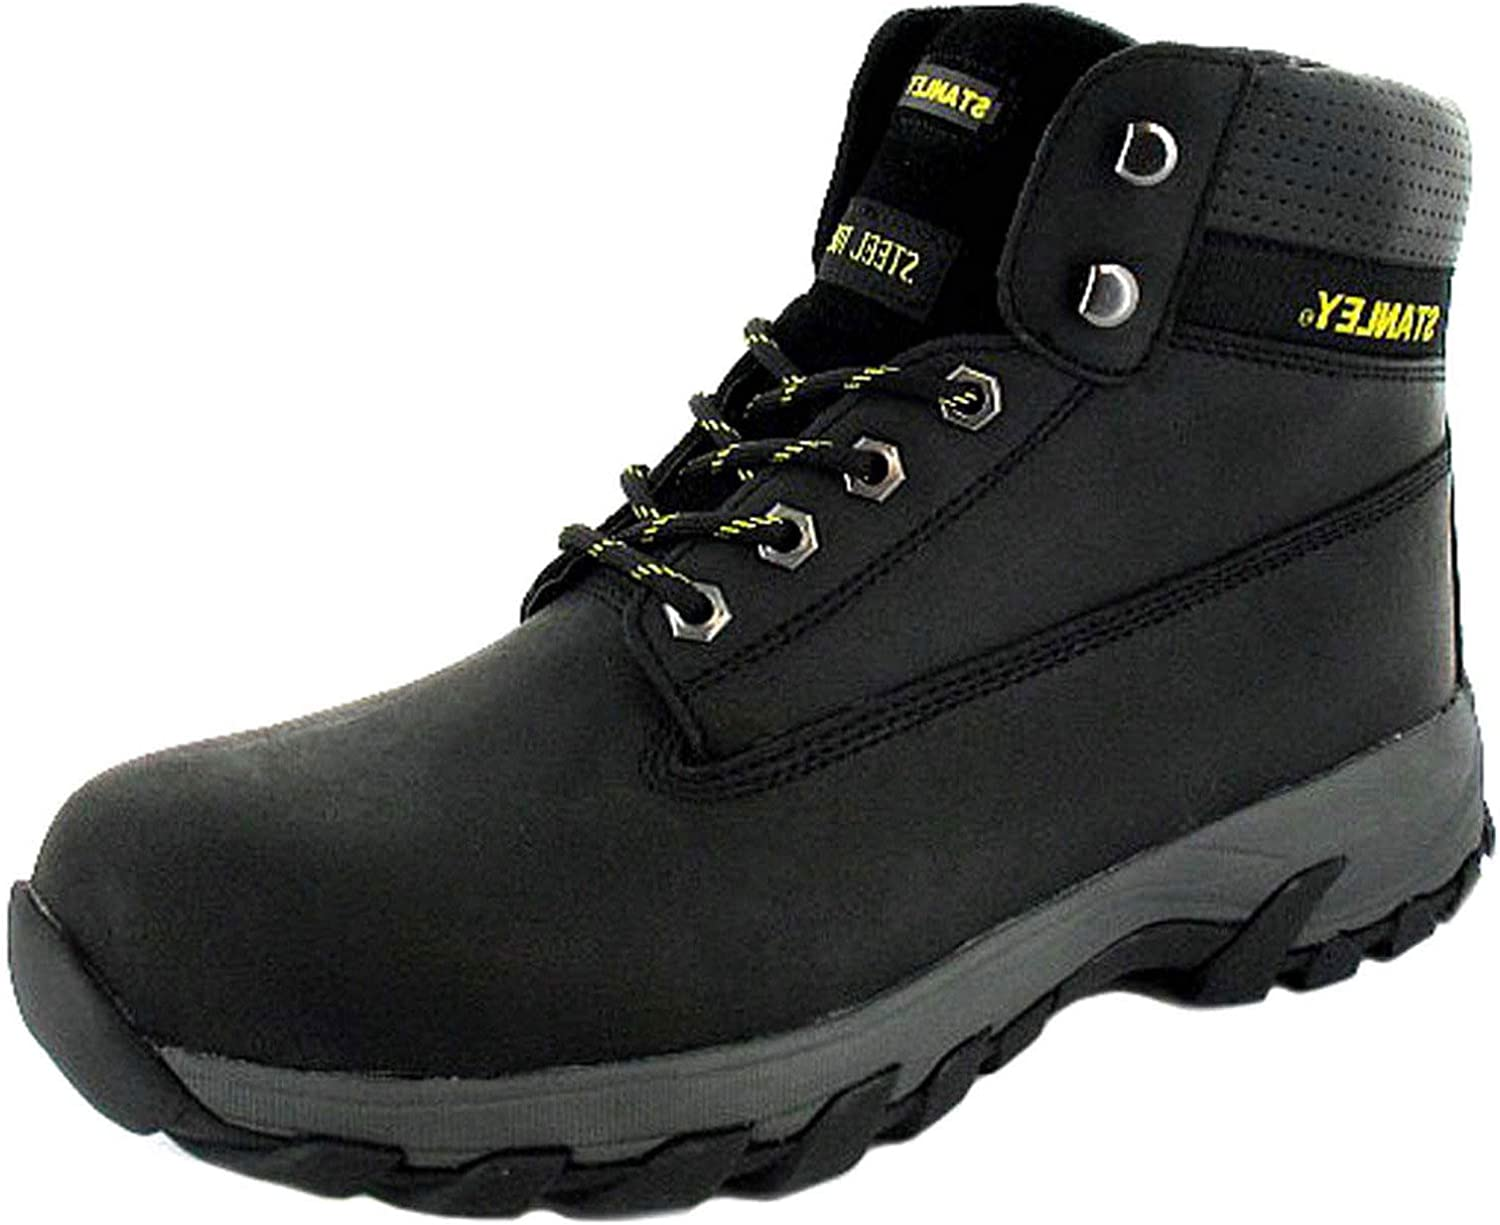 Stanley Hartford Mens Nubuck Leather Material Safety Boots Black